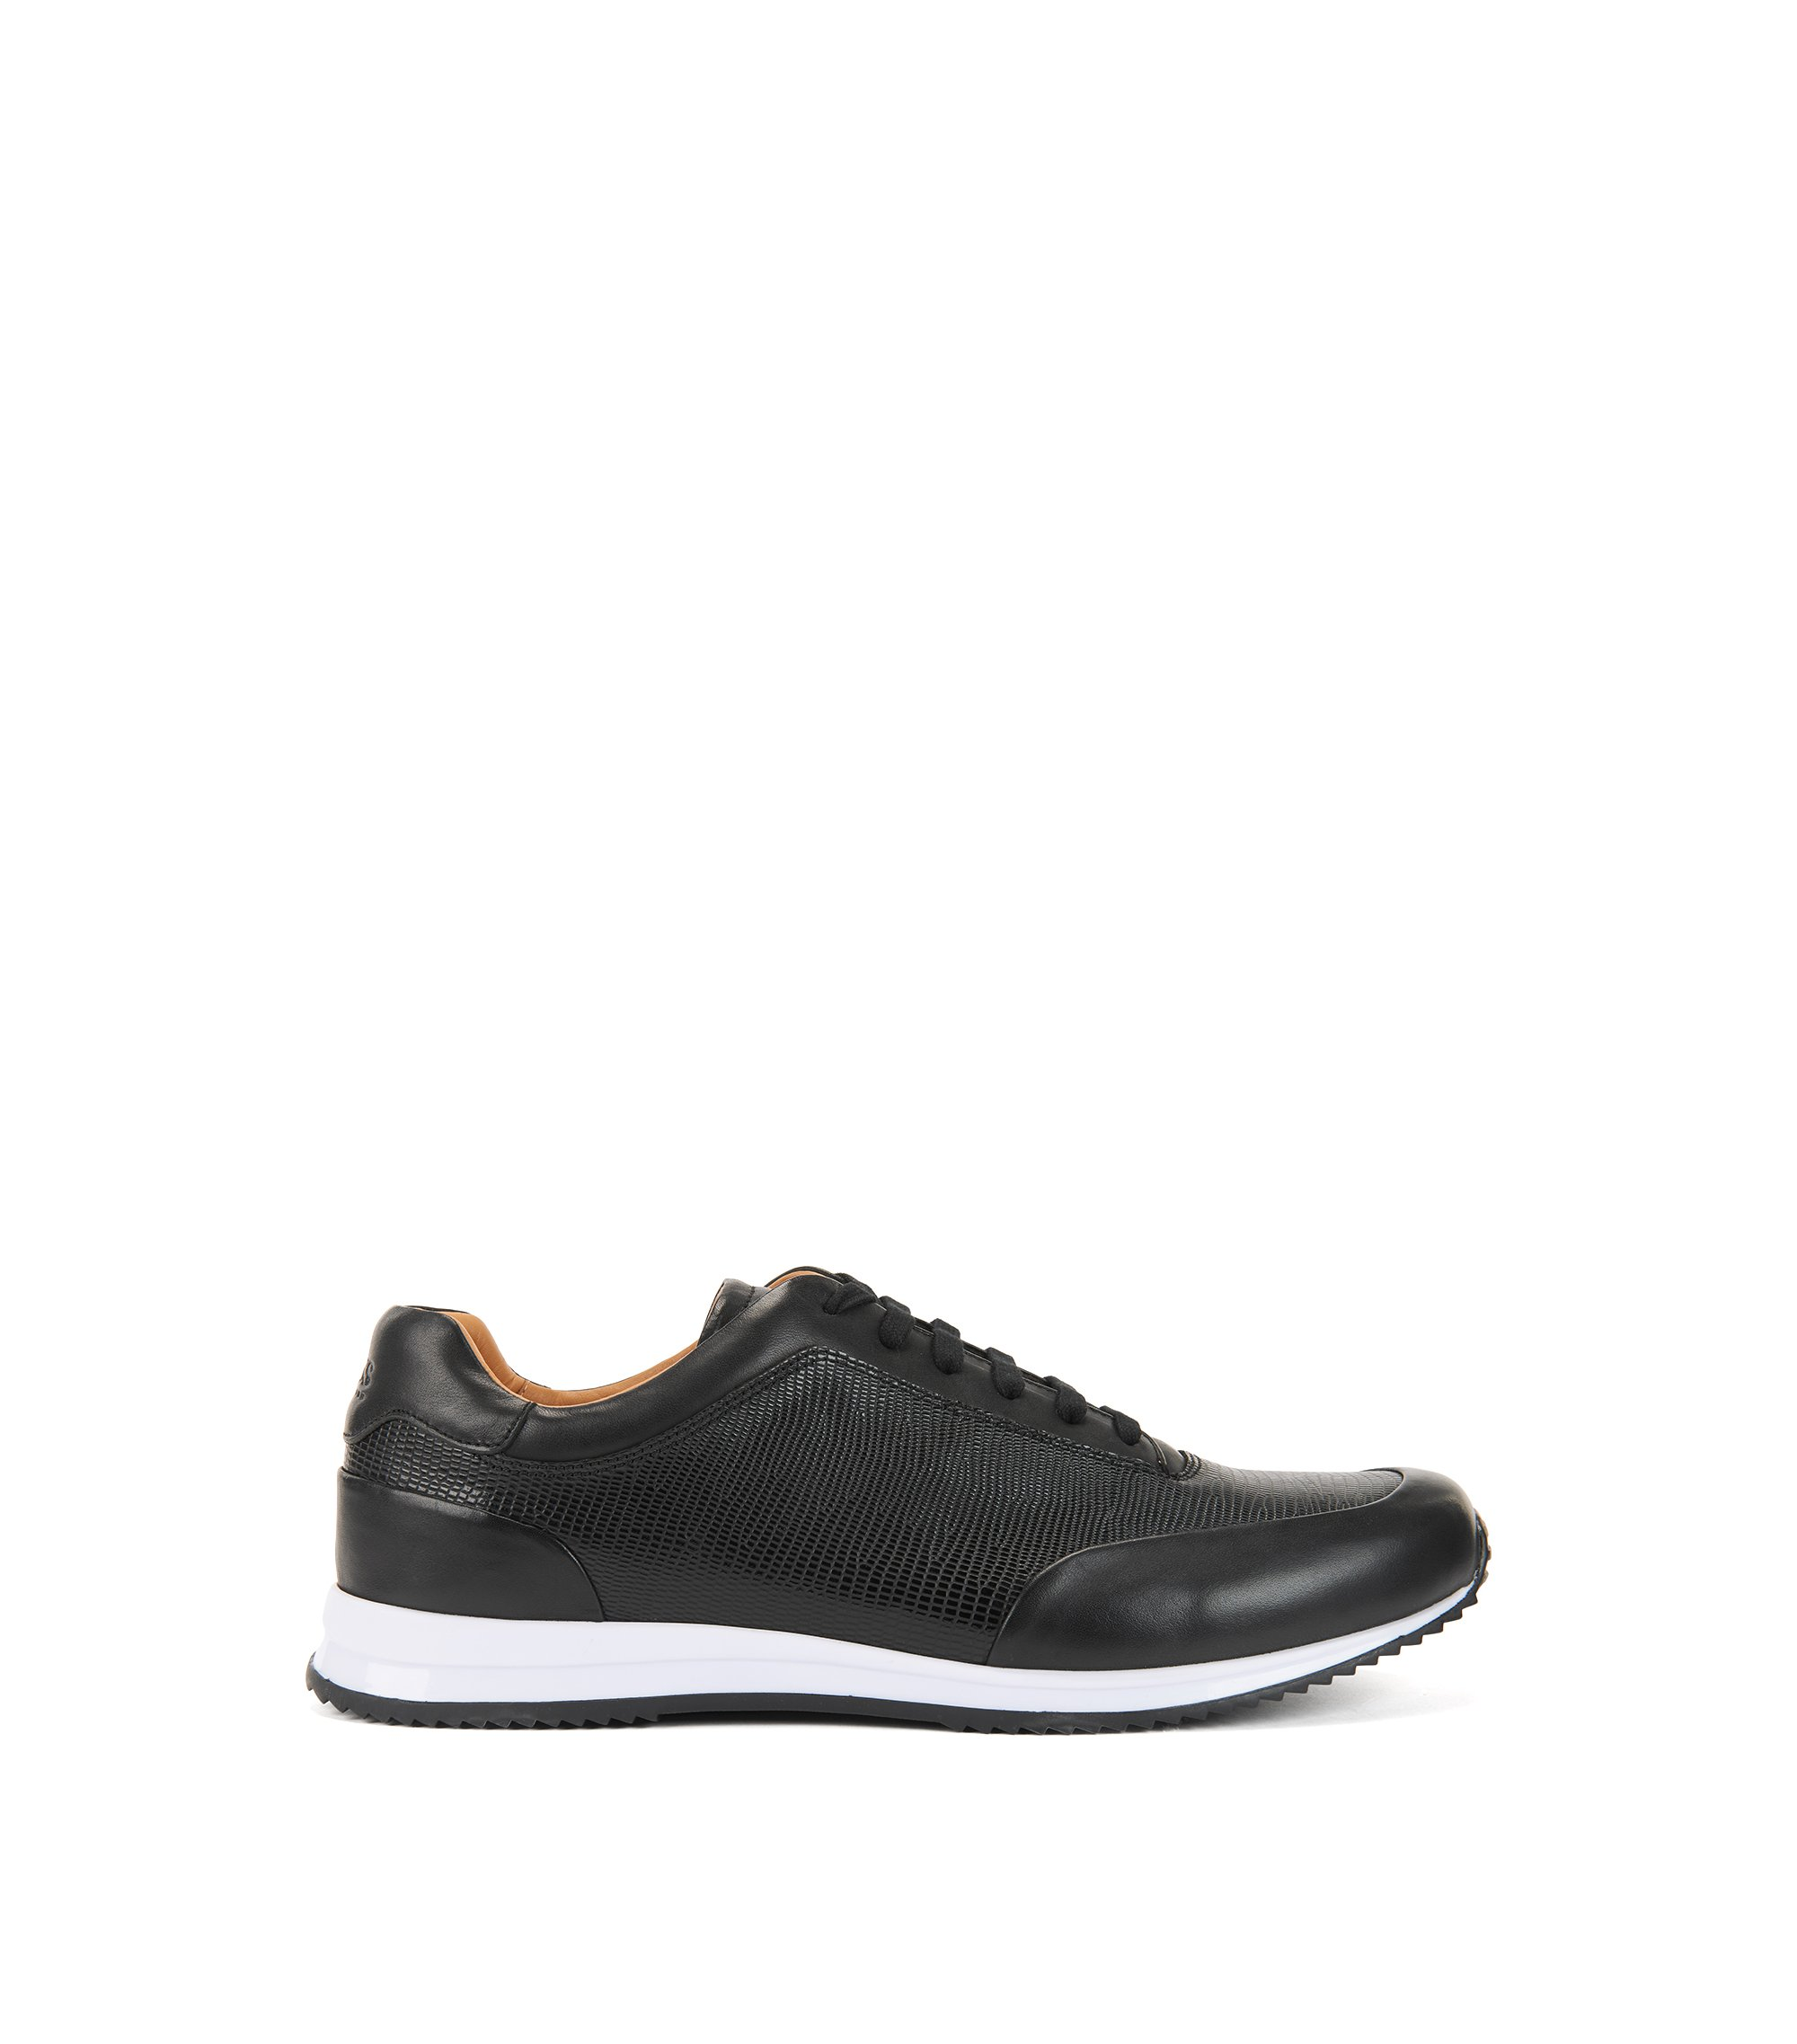 Lace-up sneakers in printed calf leather, Black